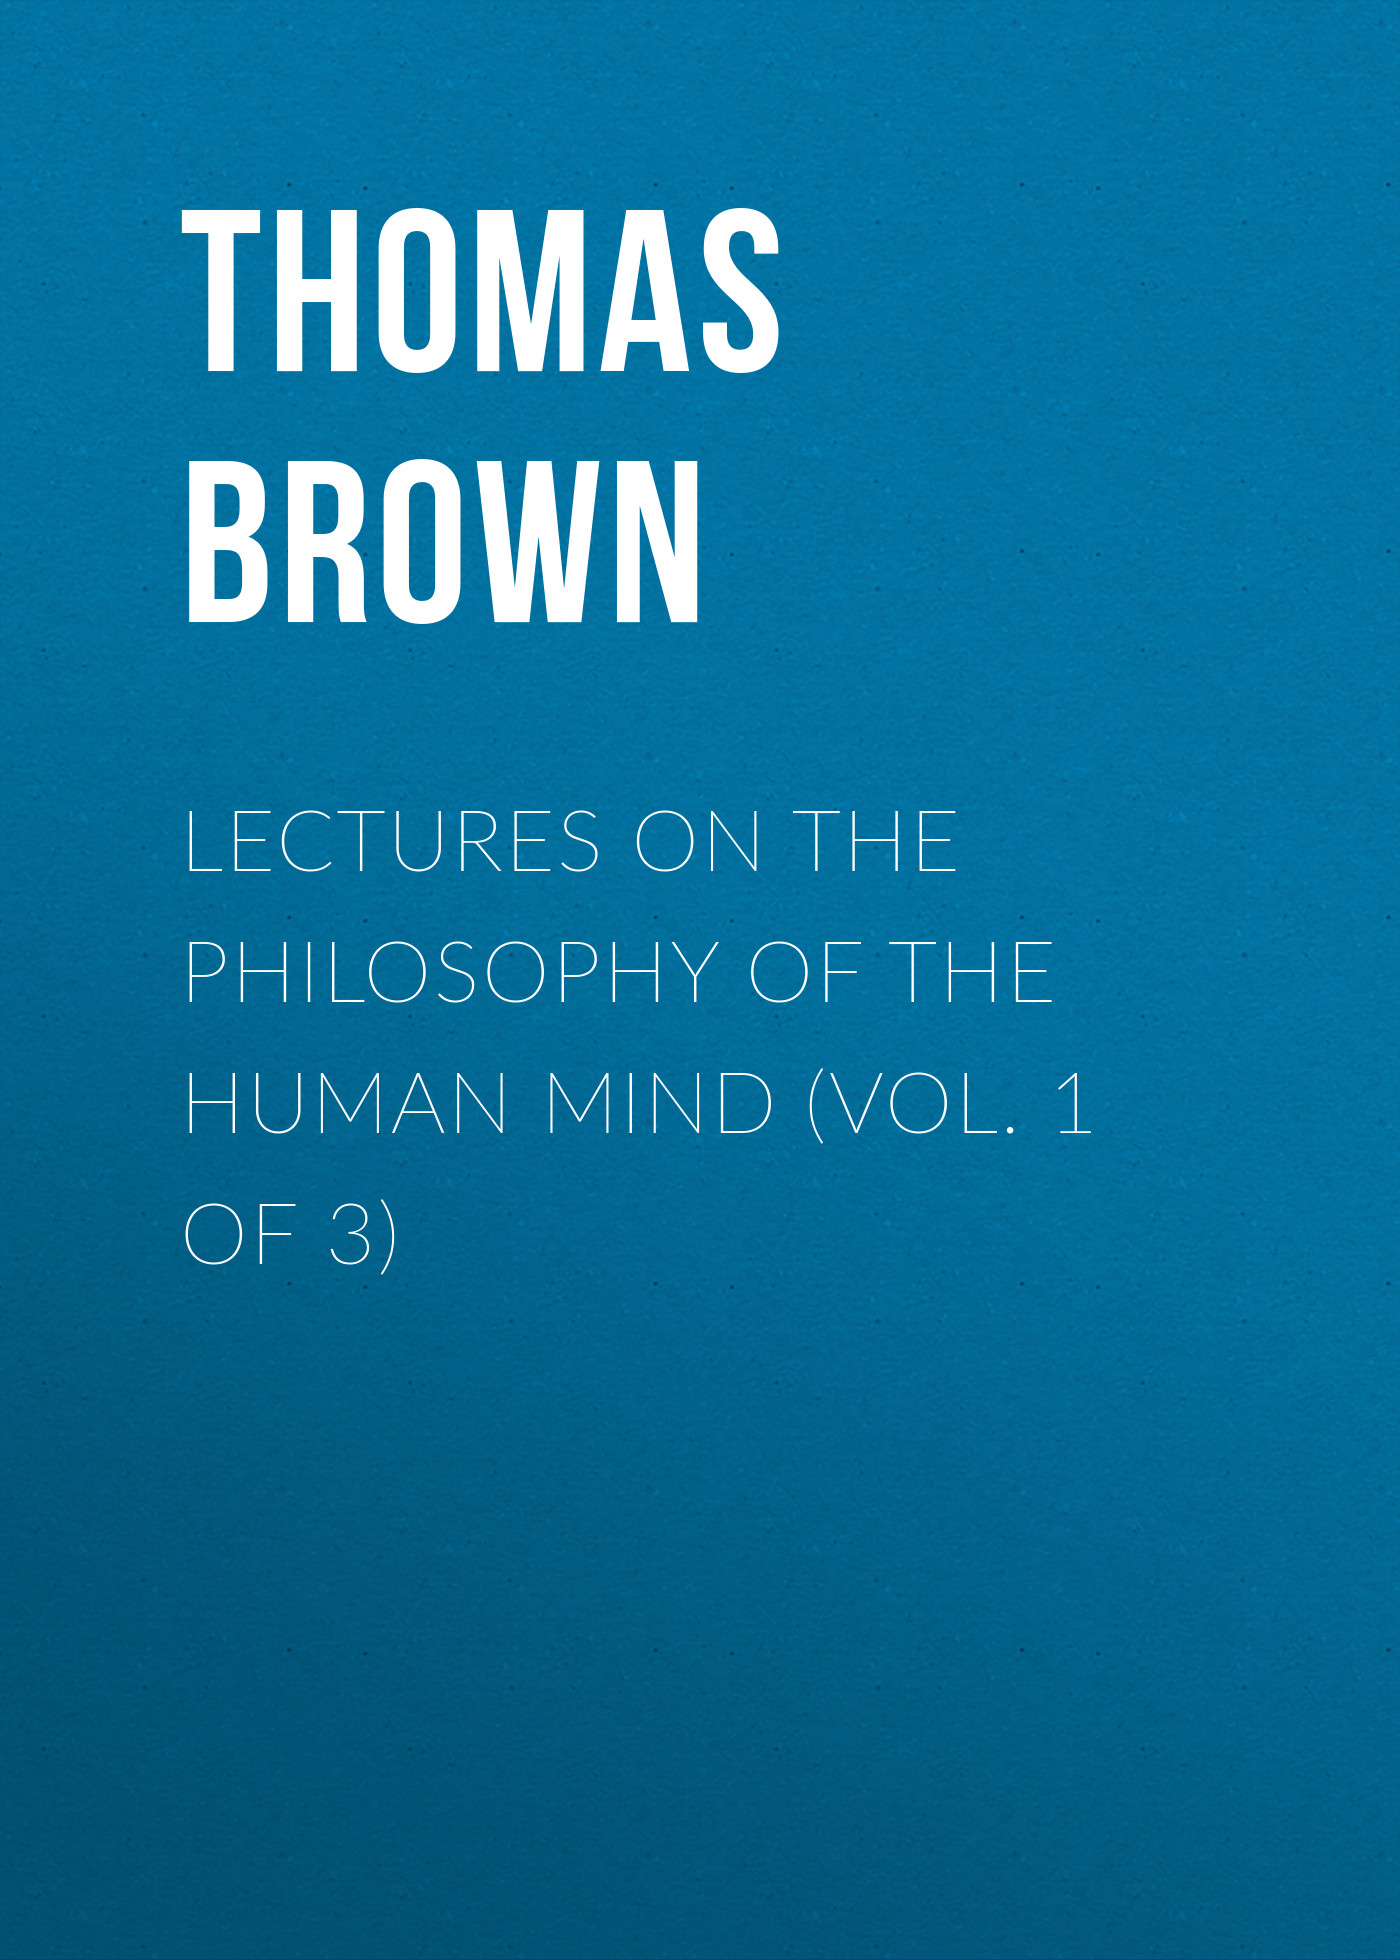 Brown Thomas Lectures on the Philosophy of the Human Mind (Vol. 1 of 3) dugald stewart the philosophy of the active and moral powers of man vol 1